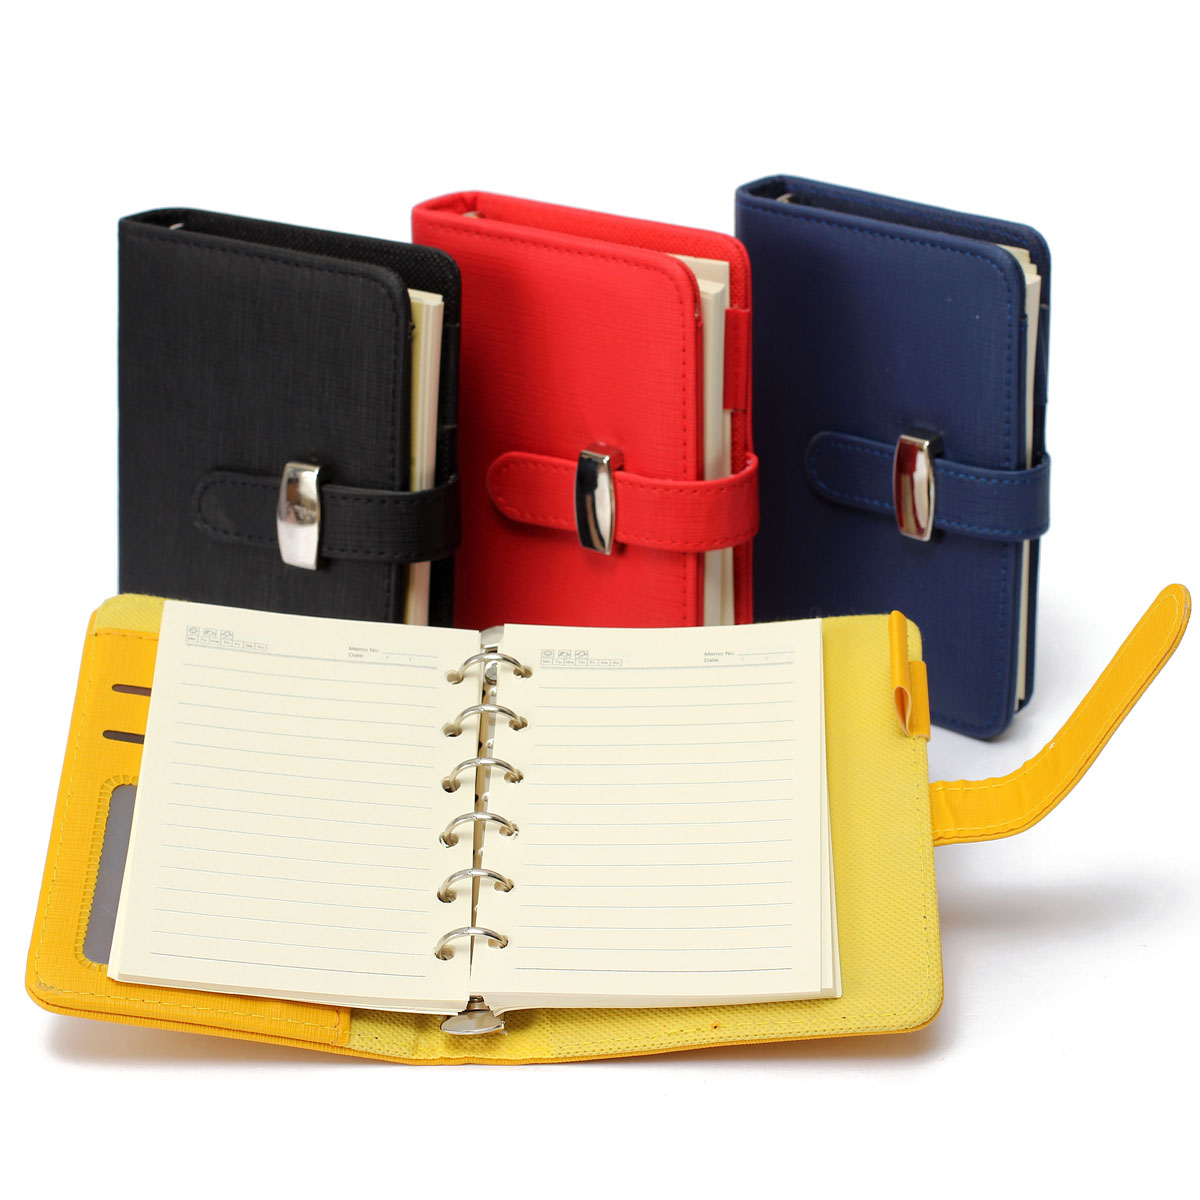 Modern Design High Quality A5 Personal Pocket Organiser Planner PU Leather Cover Diary Notebook Spiral(China (Mainland))